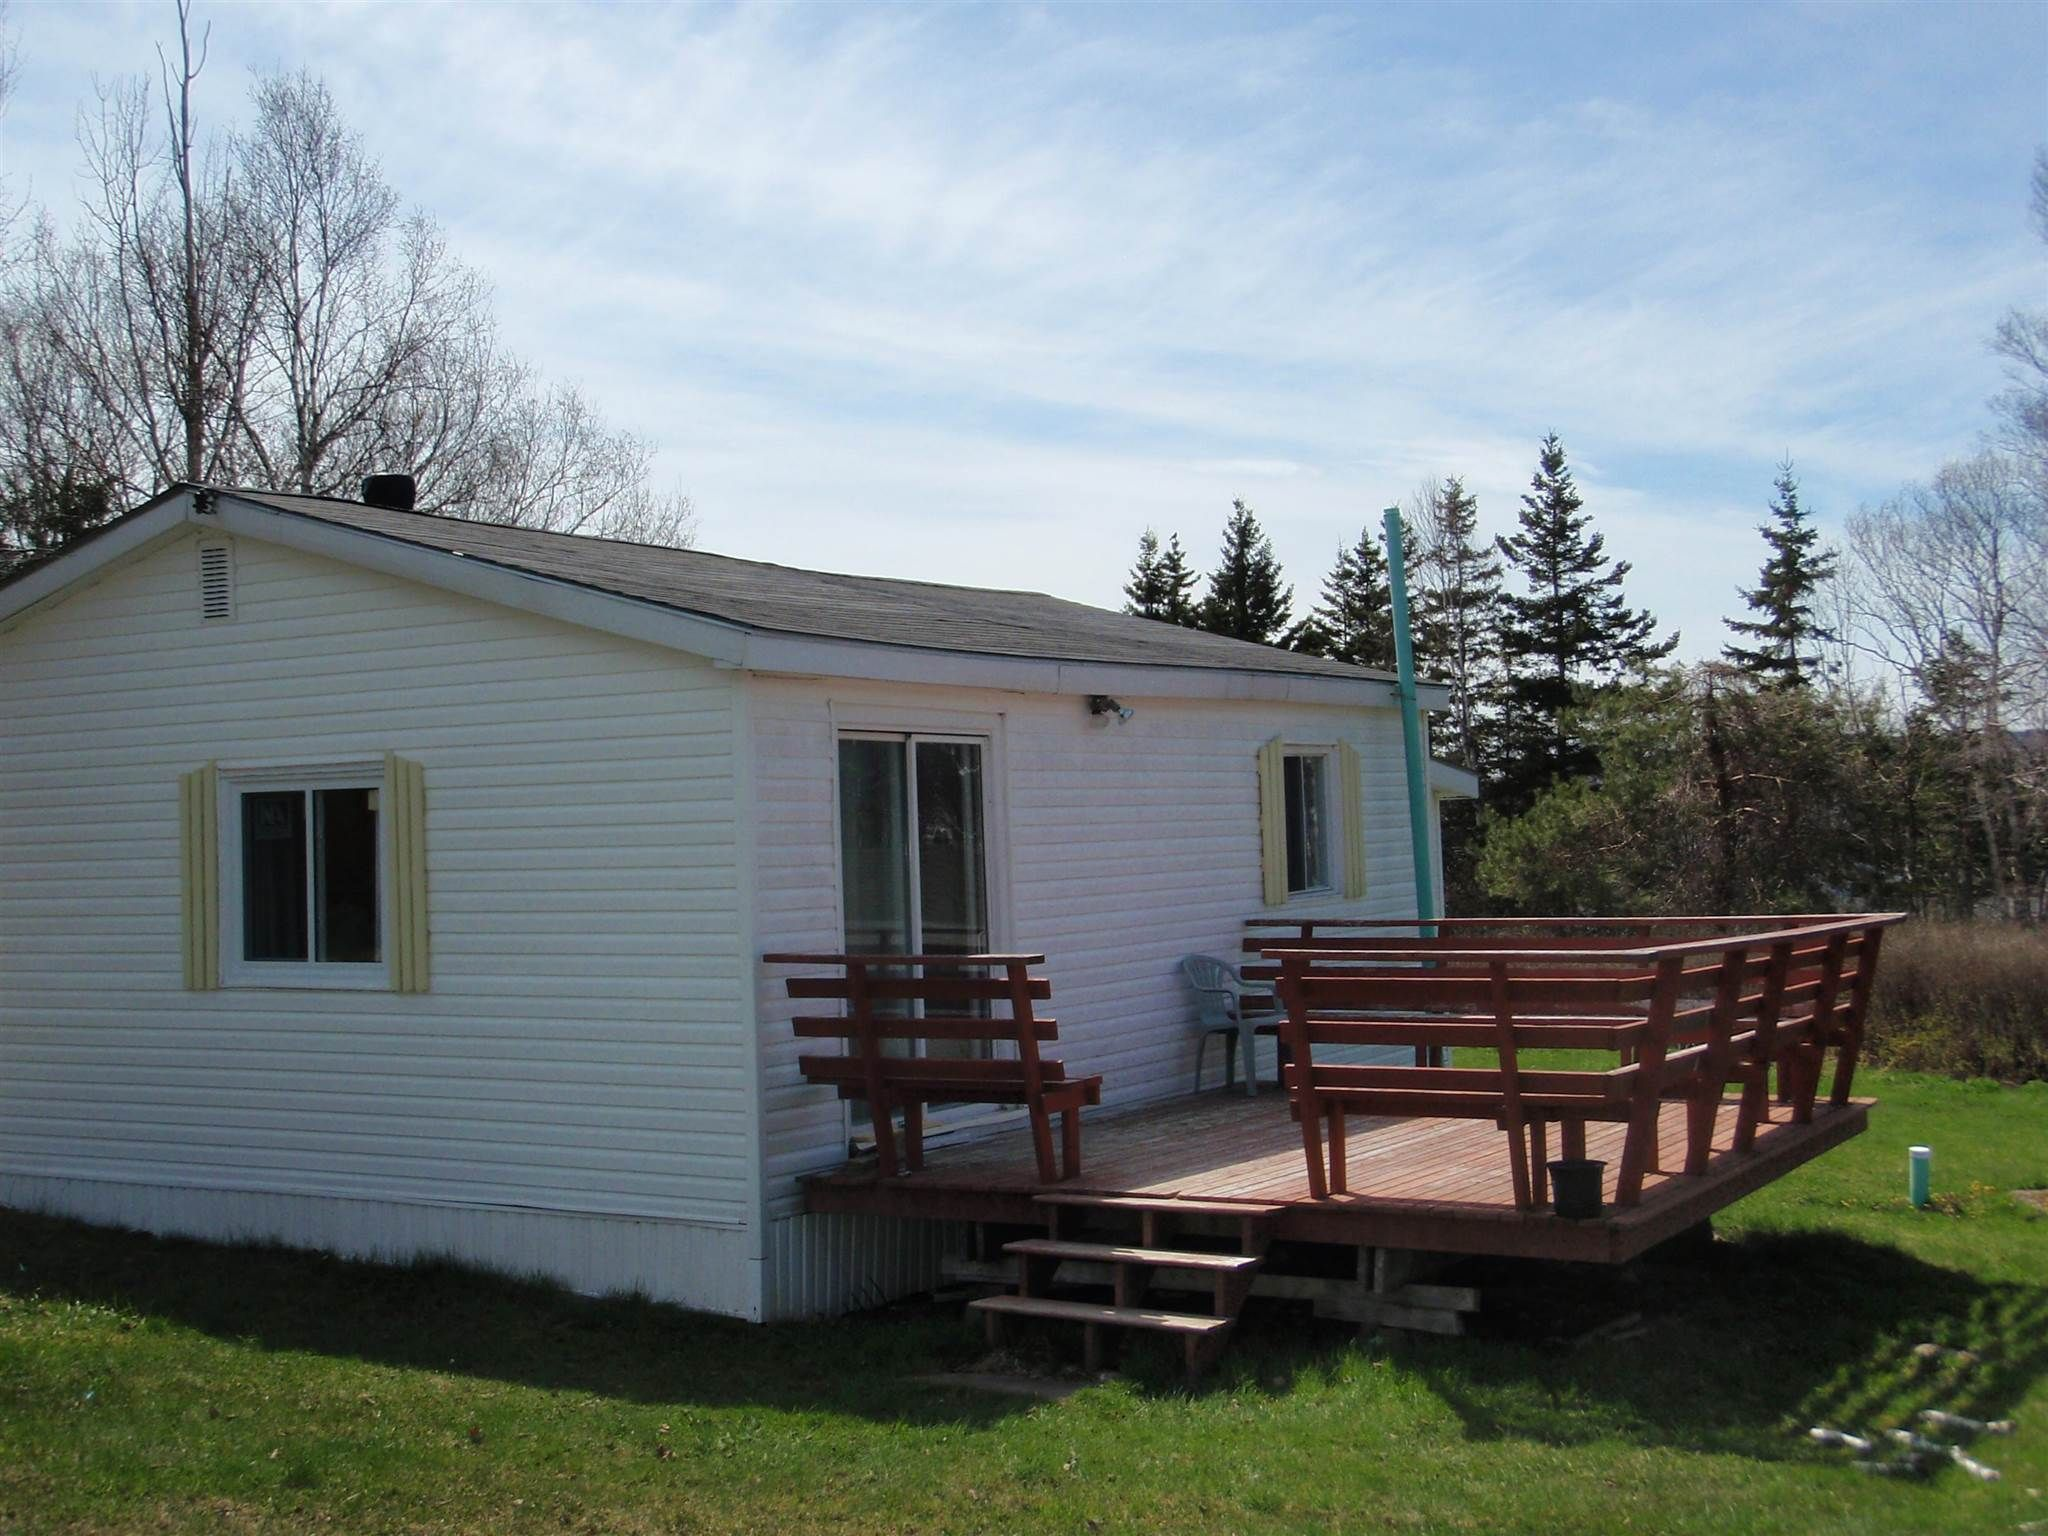 Main Photo: 53 Macaskill Lane in East Bay: 207-C. B. County Residential for sale (Cape Breton)  : MLS®# 202108658